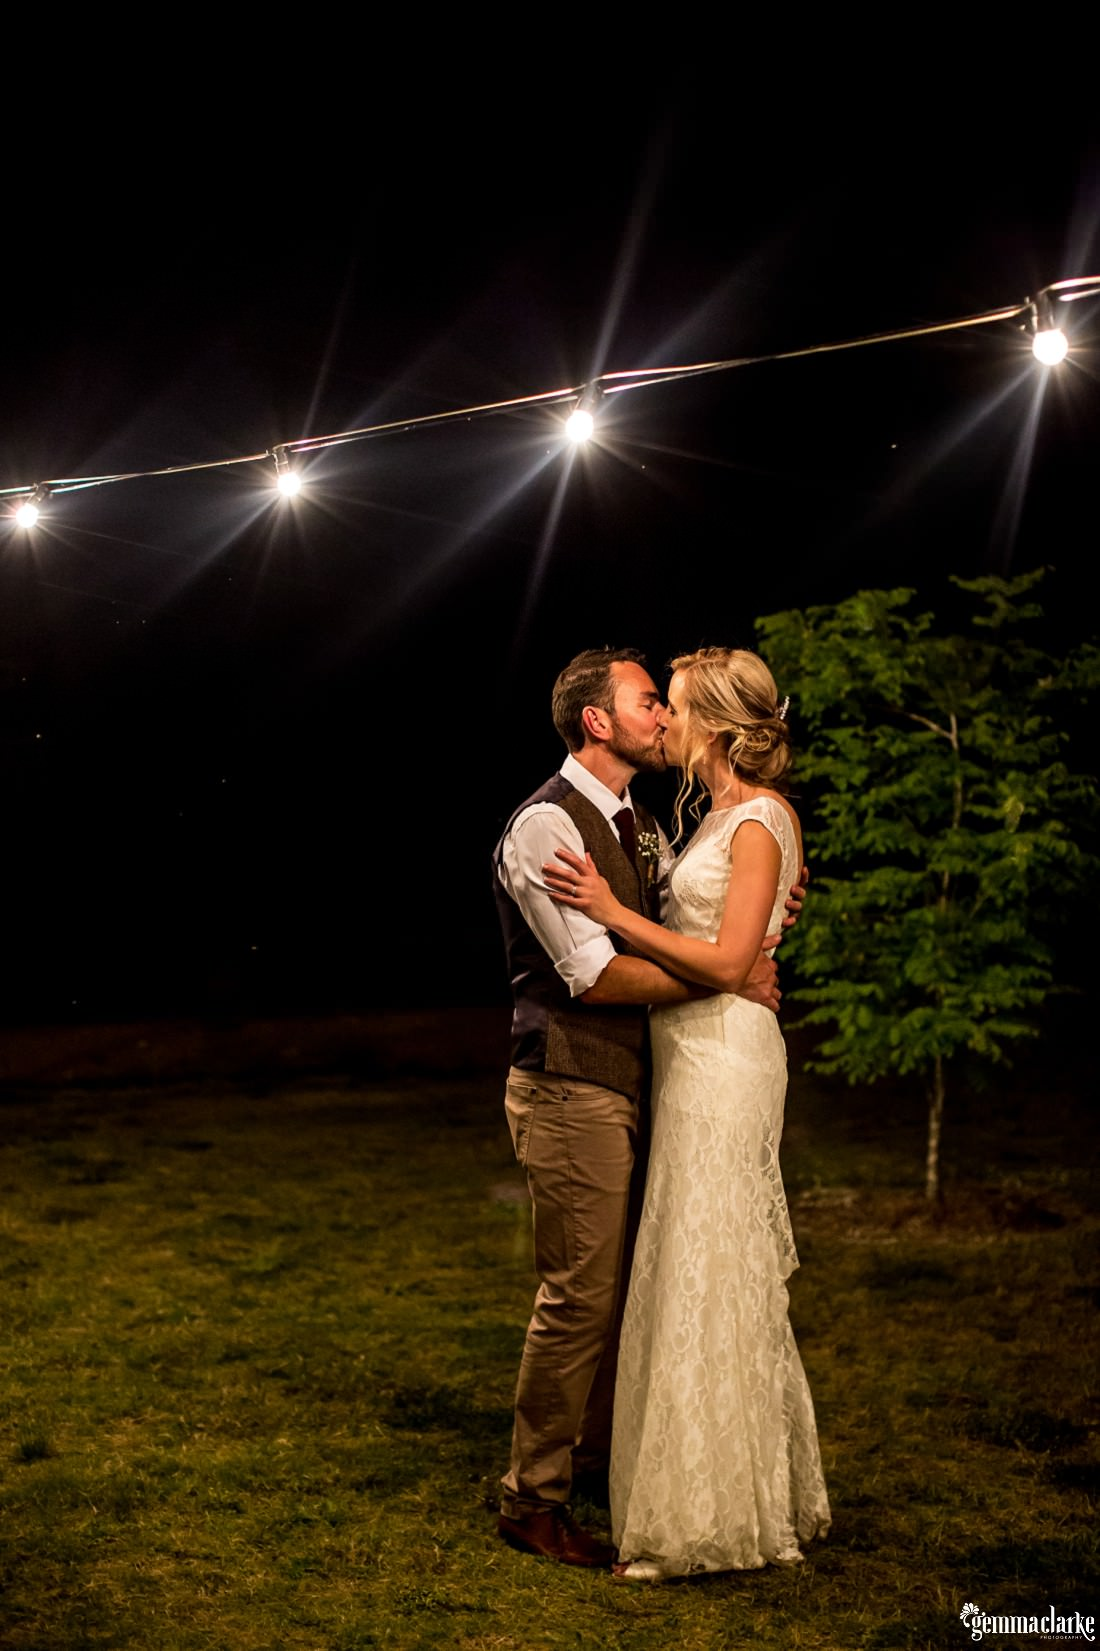 A bride and groom kiss under lights outdoors